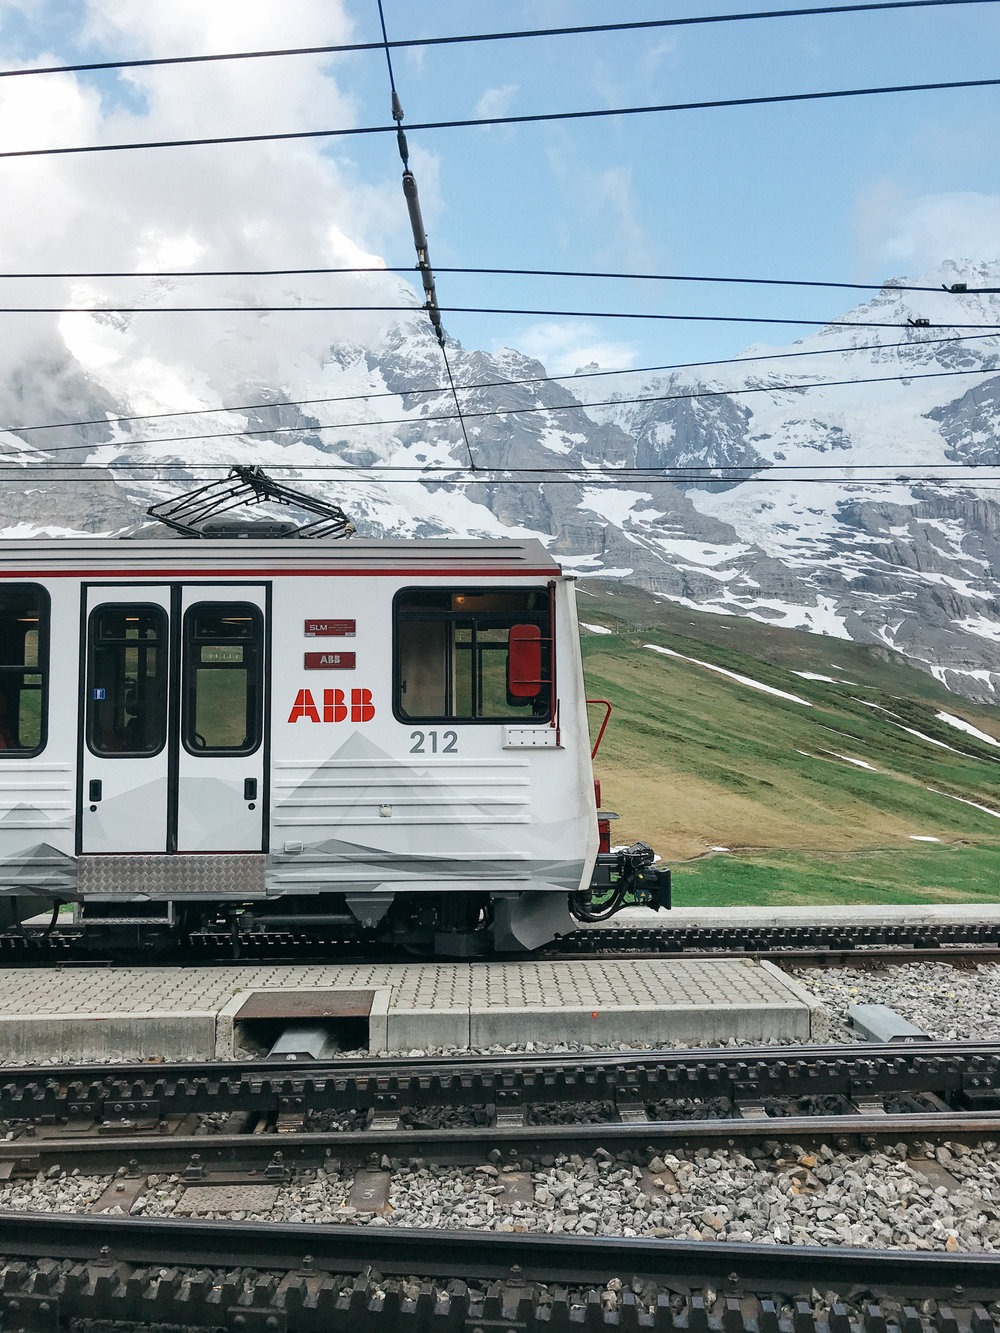 Transferring trains at Kleine Scheidegg